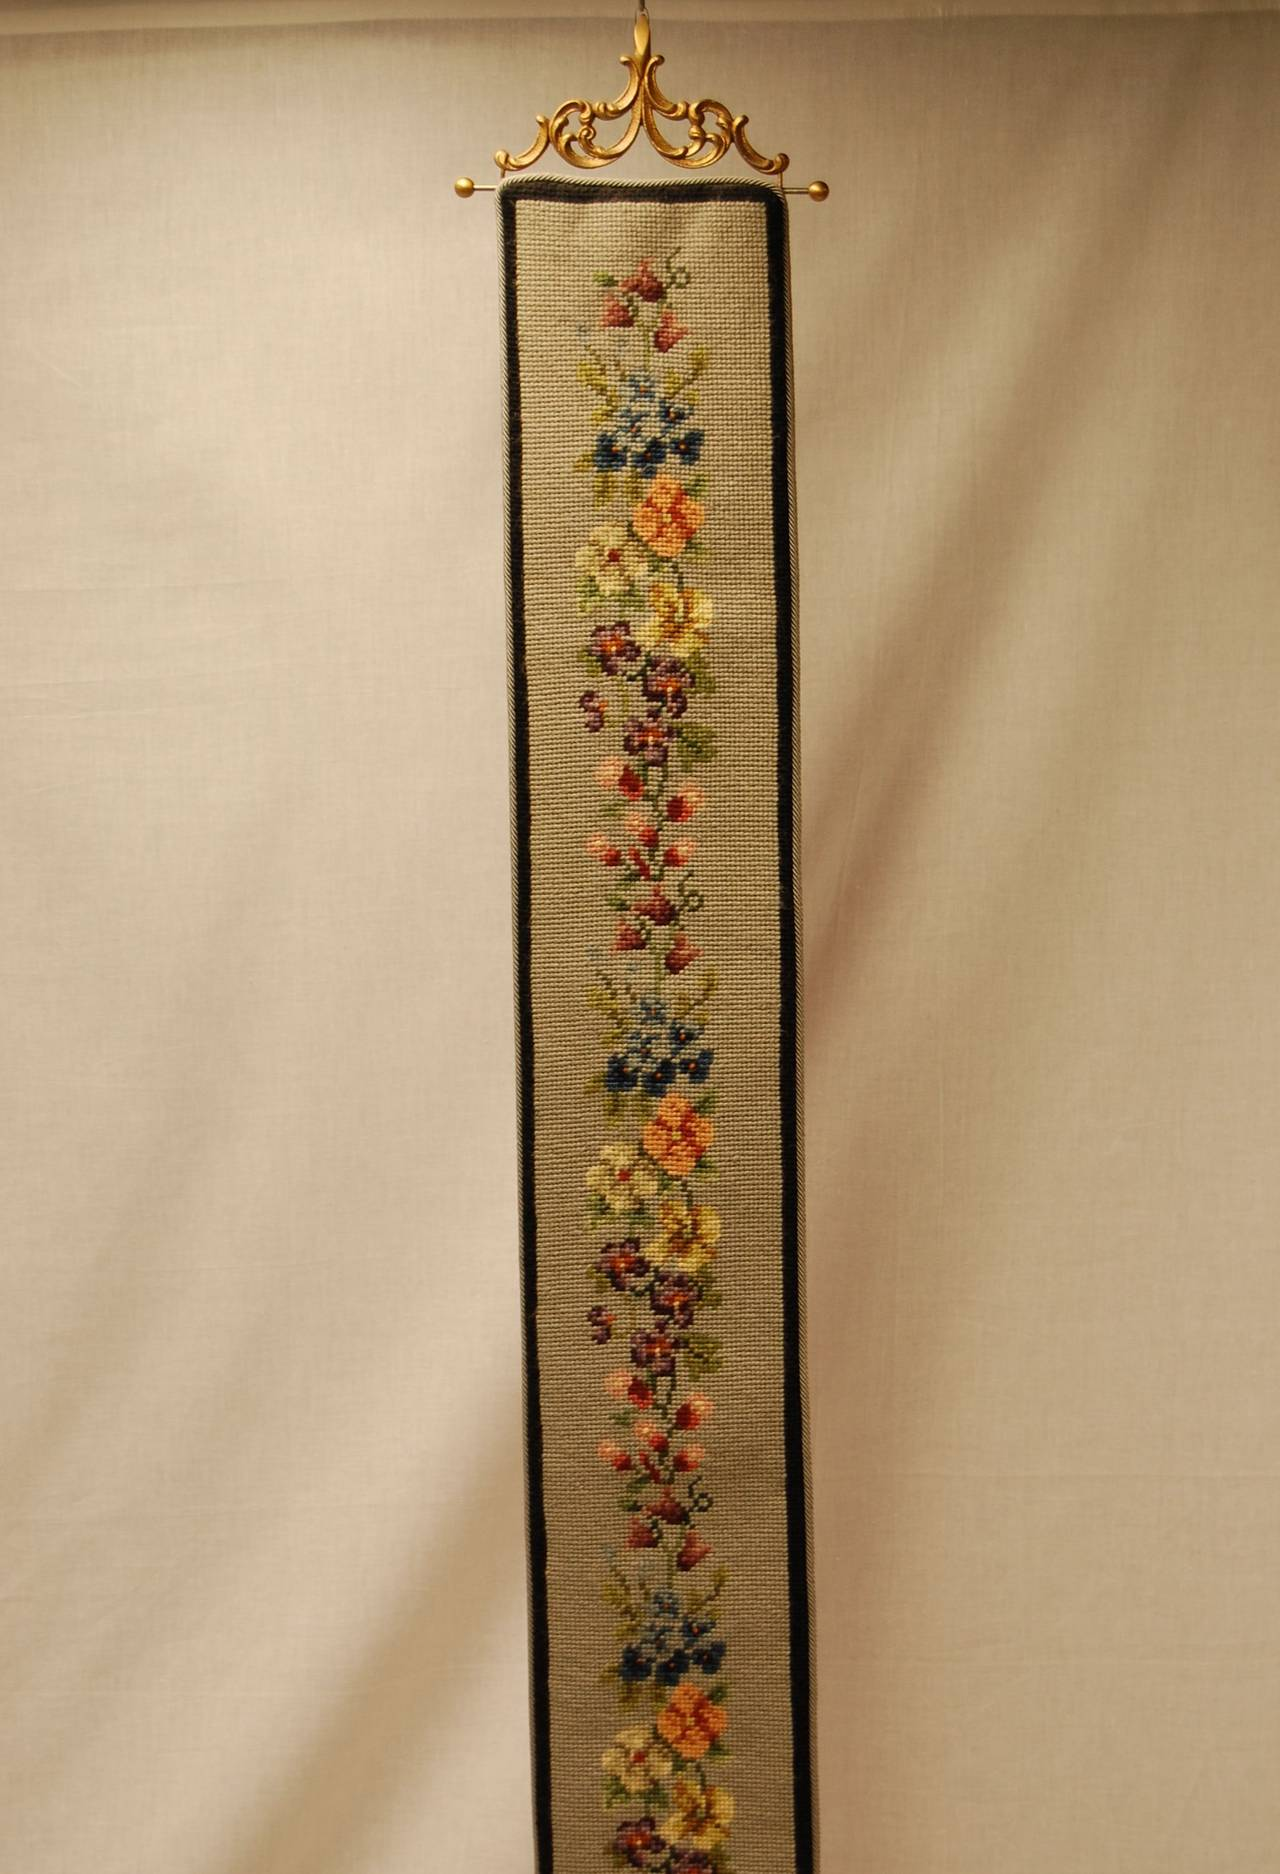 Art Deco Period Needlepoint Bell Pull With Pansy Floral